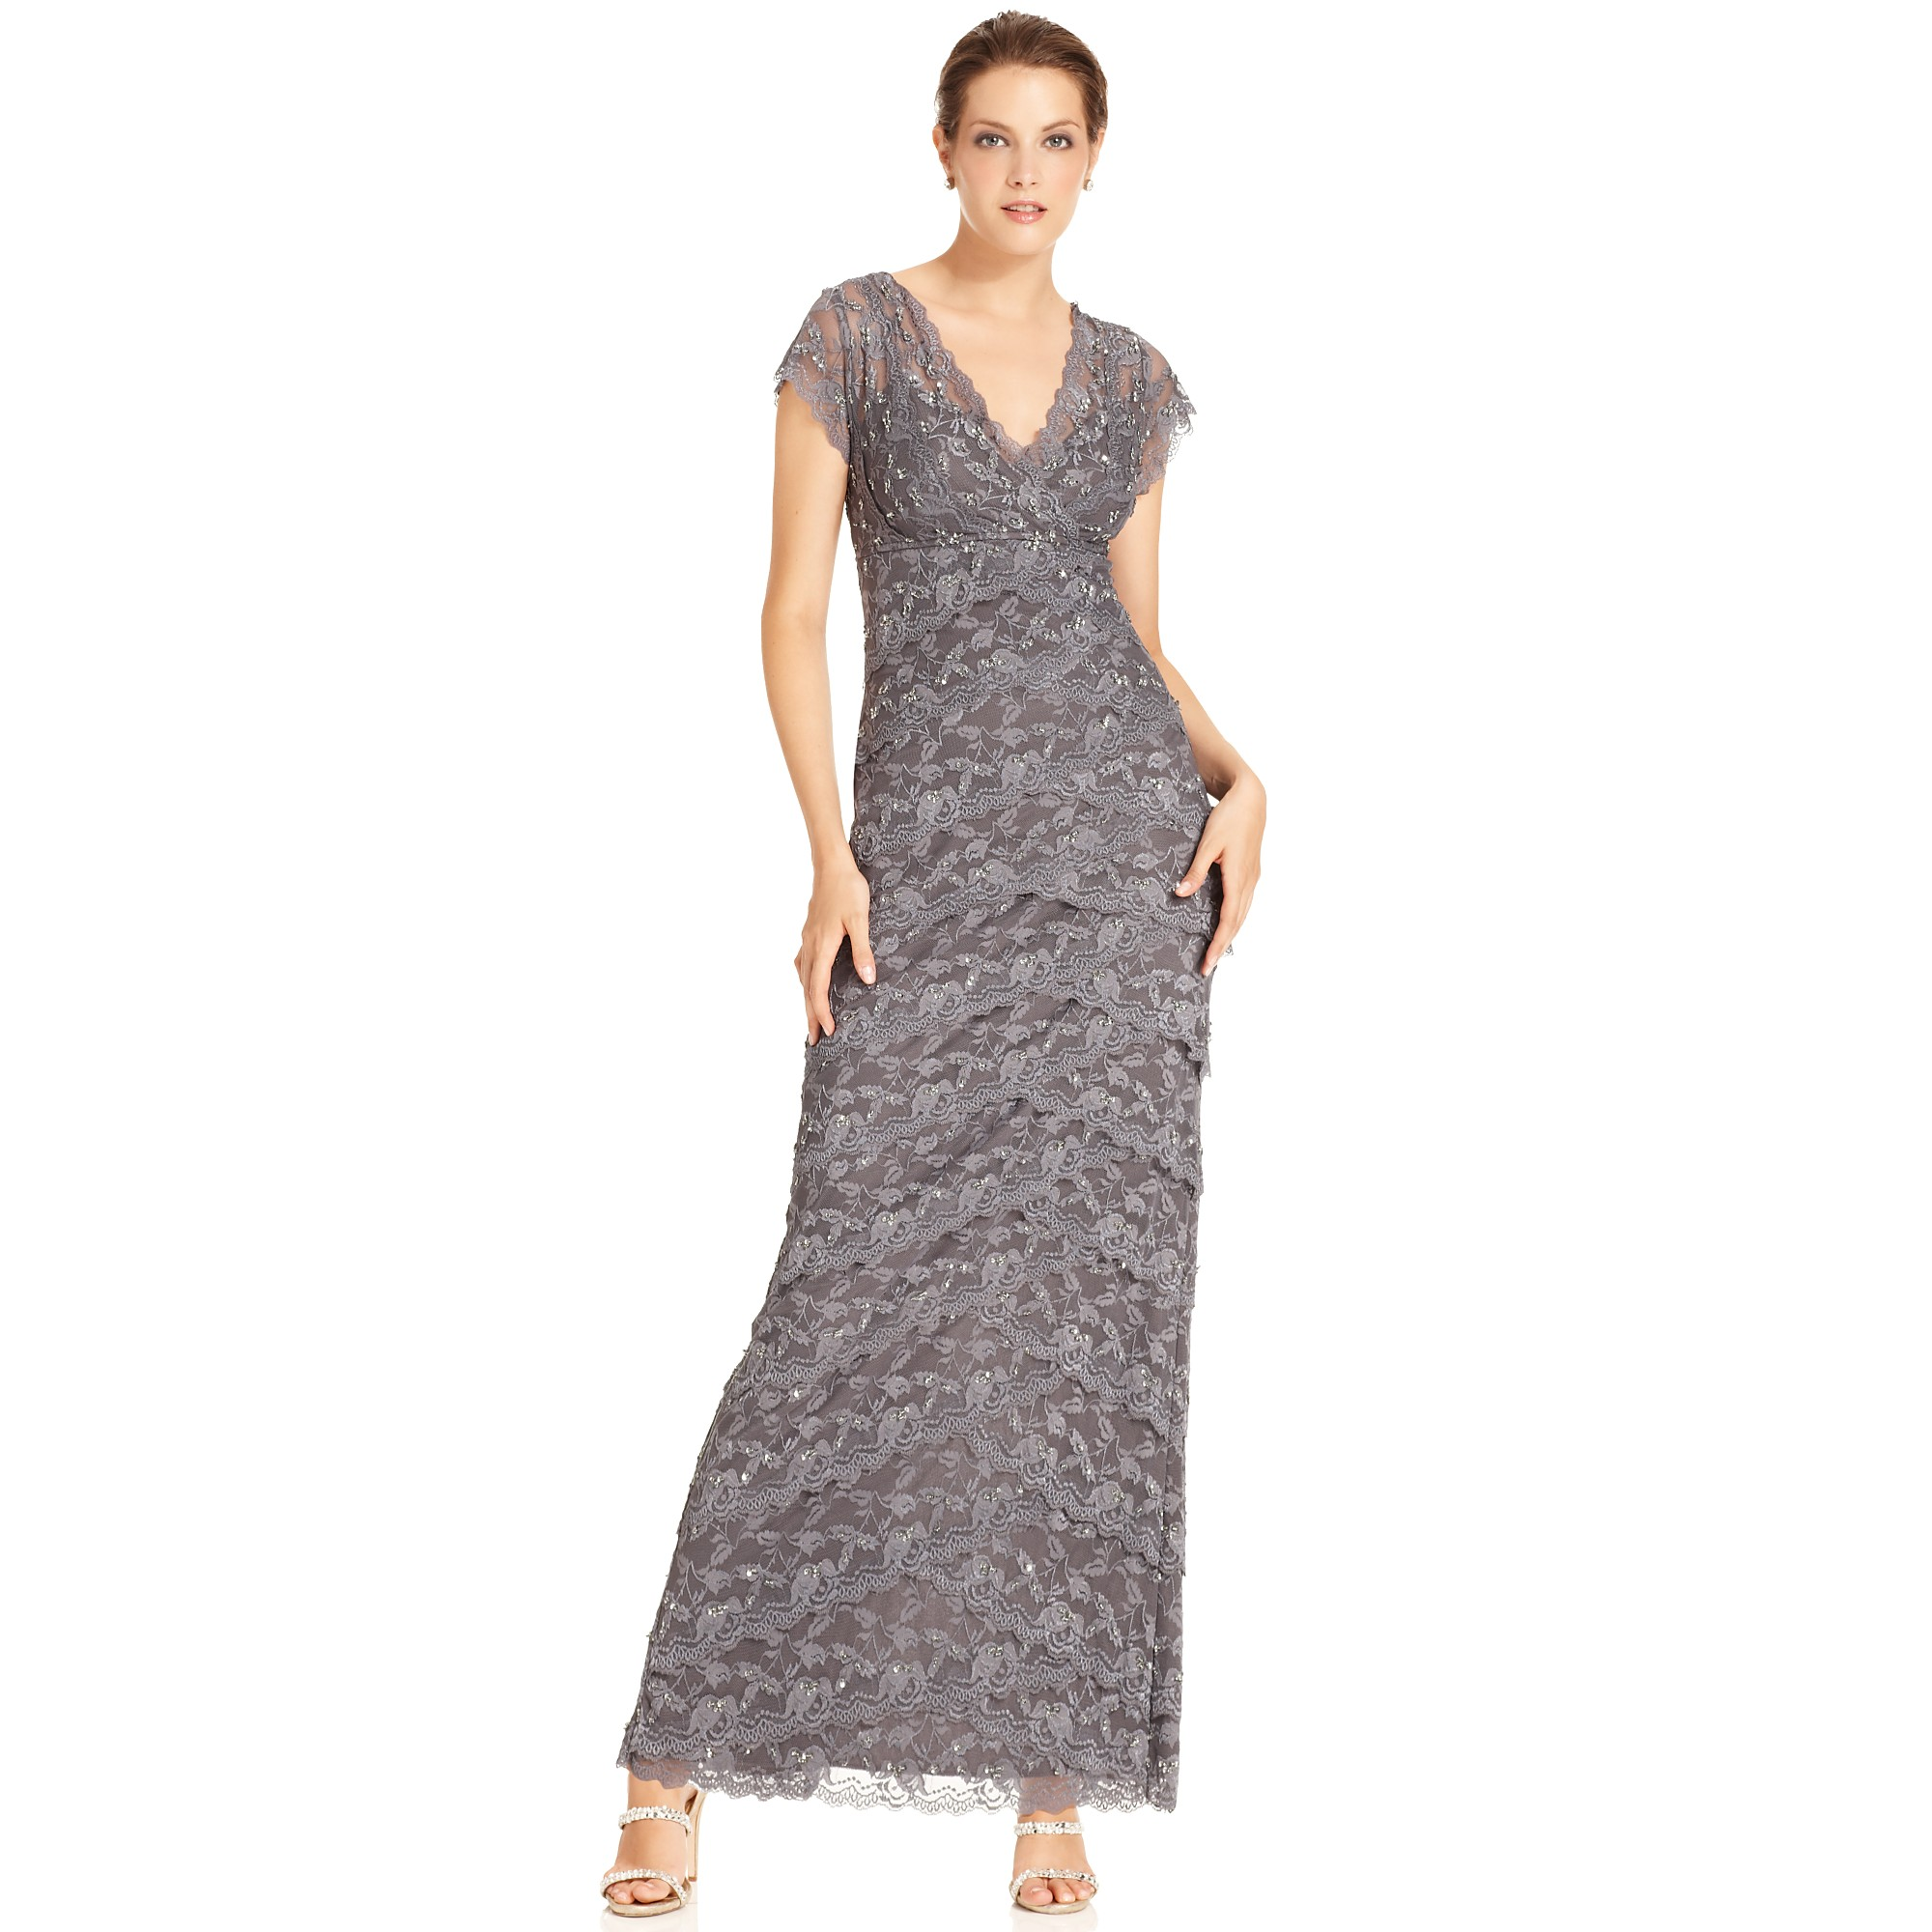 Lyst - Marina Short Sleeve Vneck Beaded Lace Evening Gown in Gray